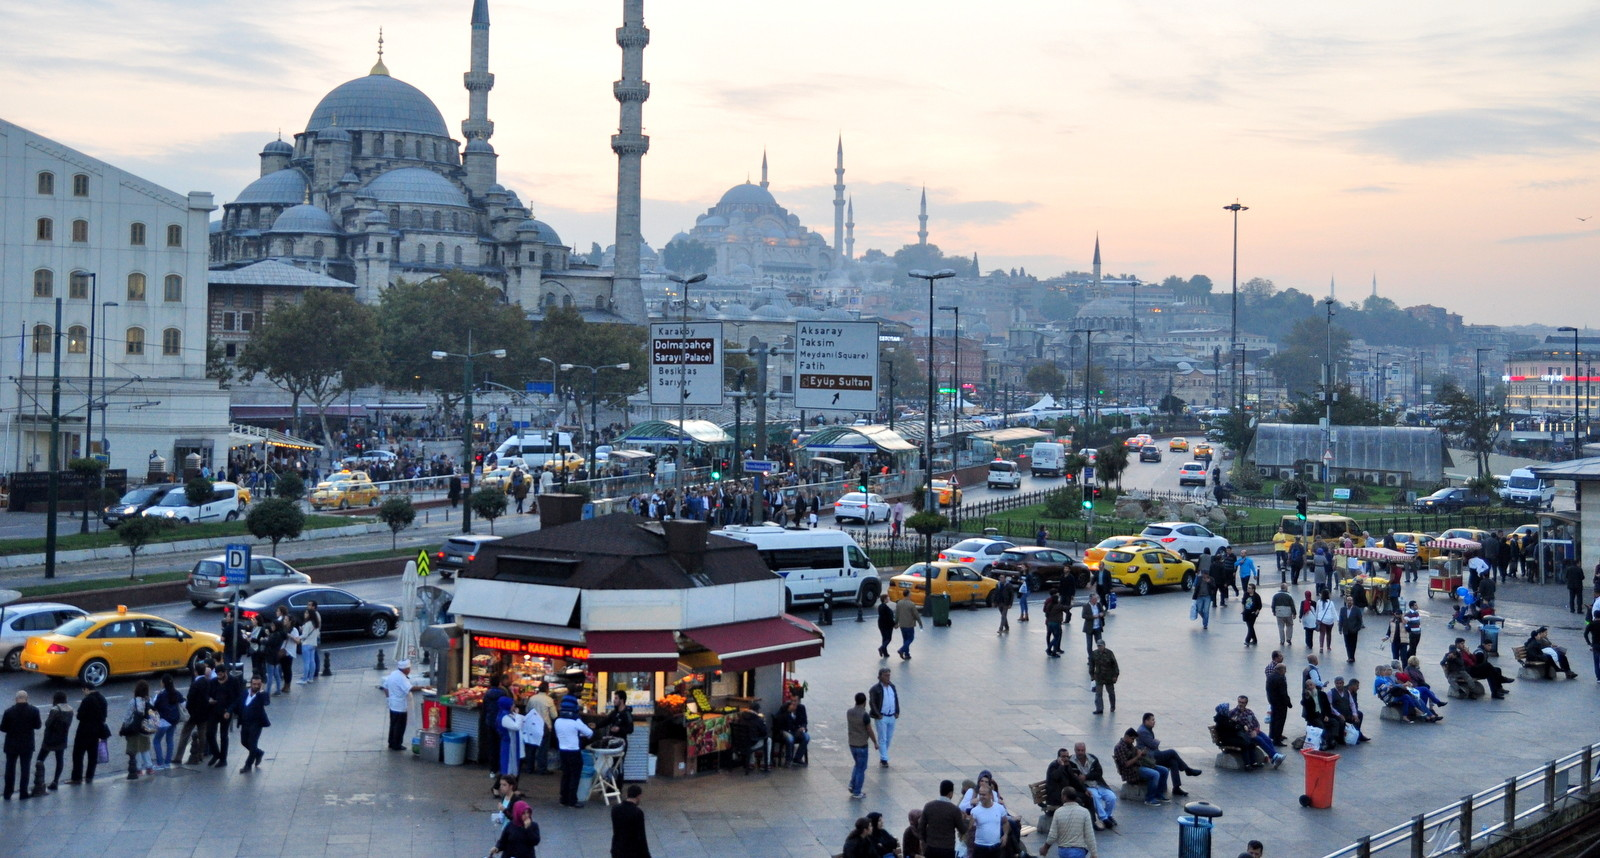 Where to Go Shopping in Istanbul - Best Places, Streets